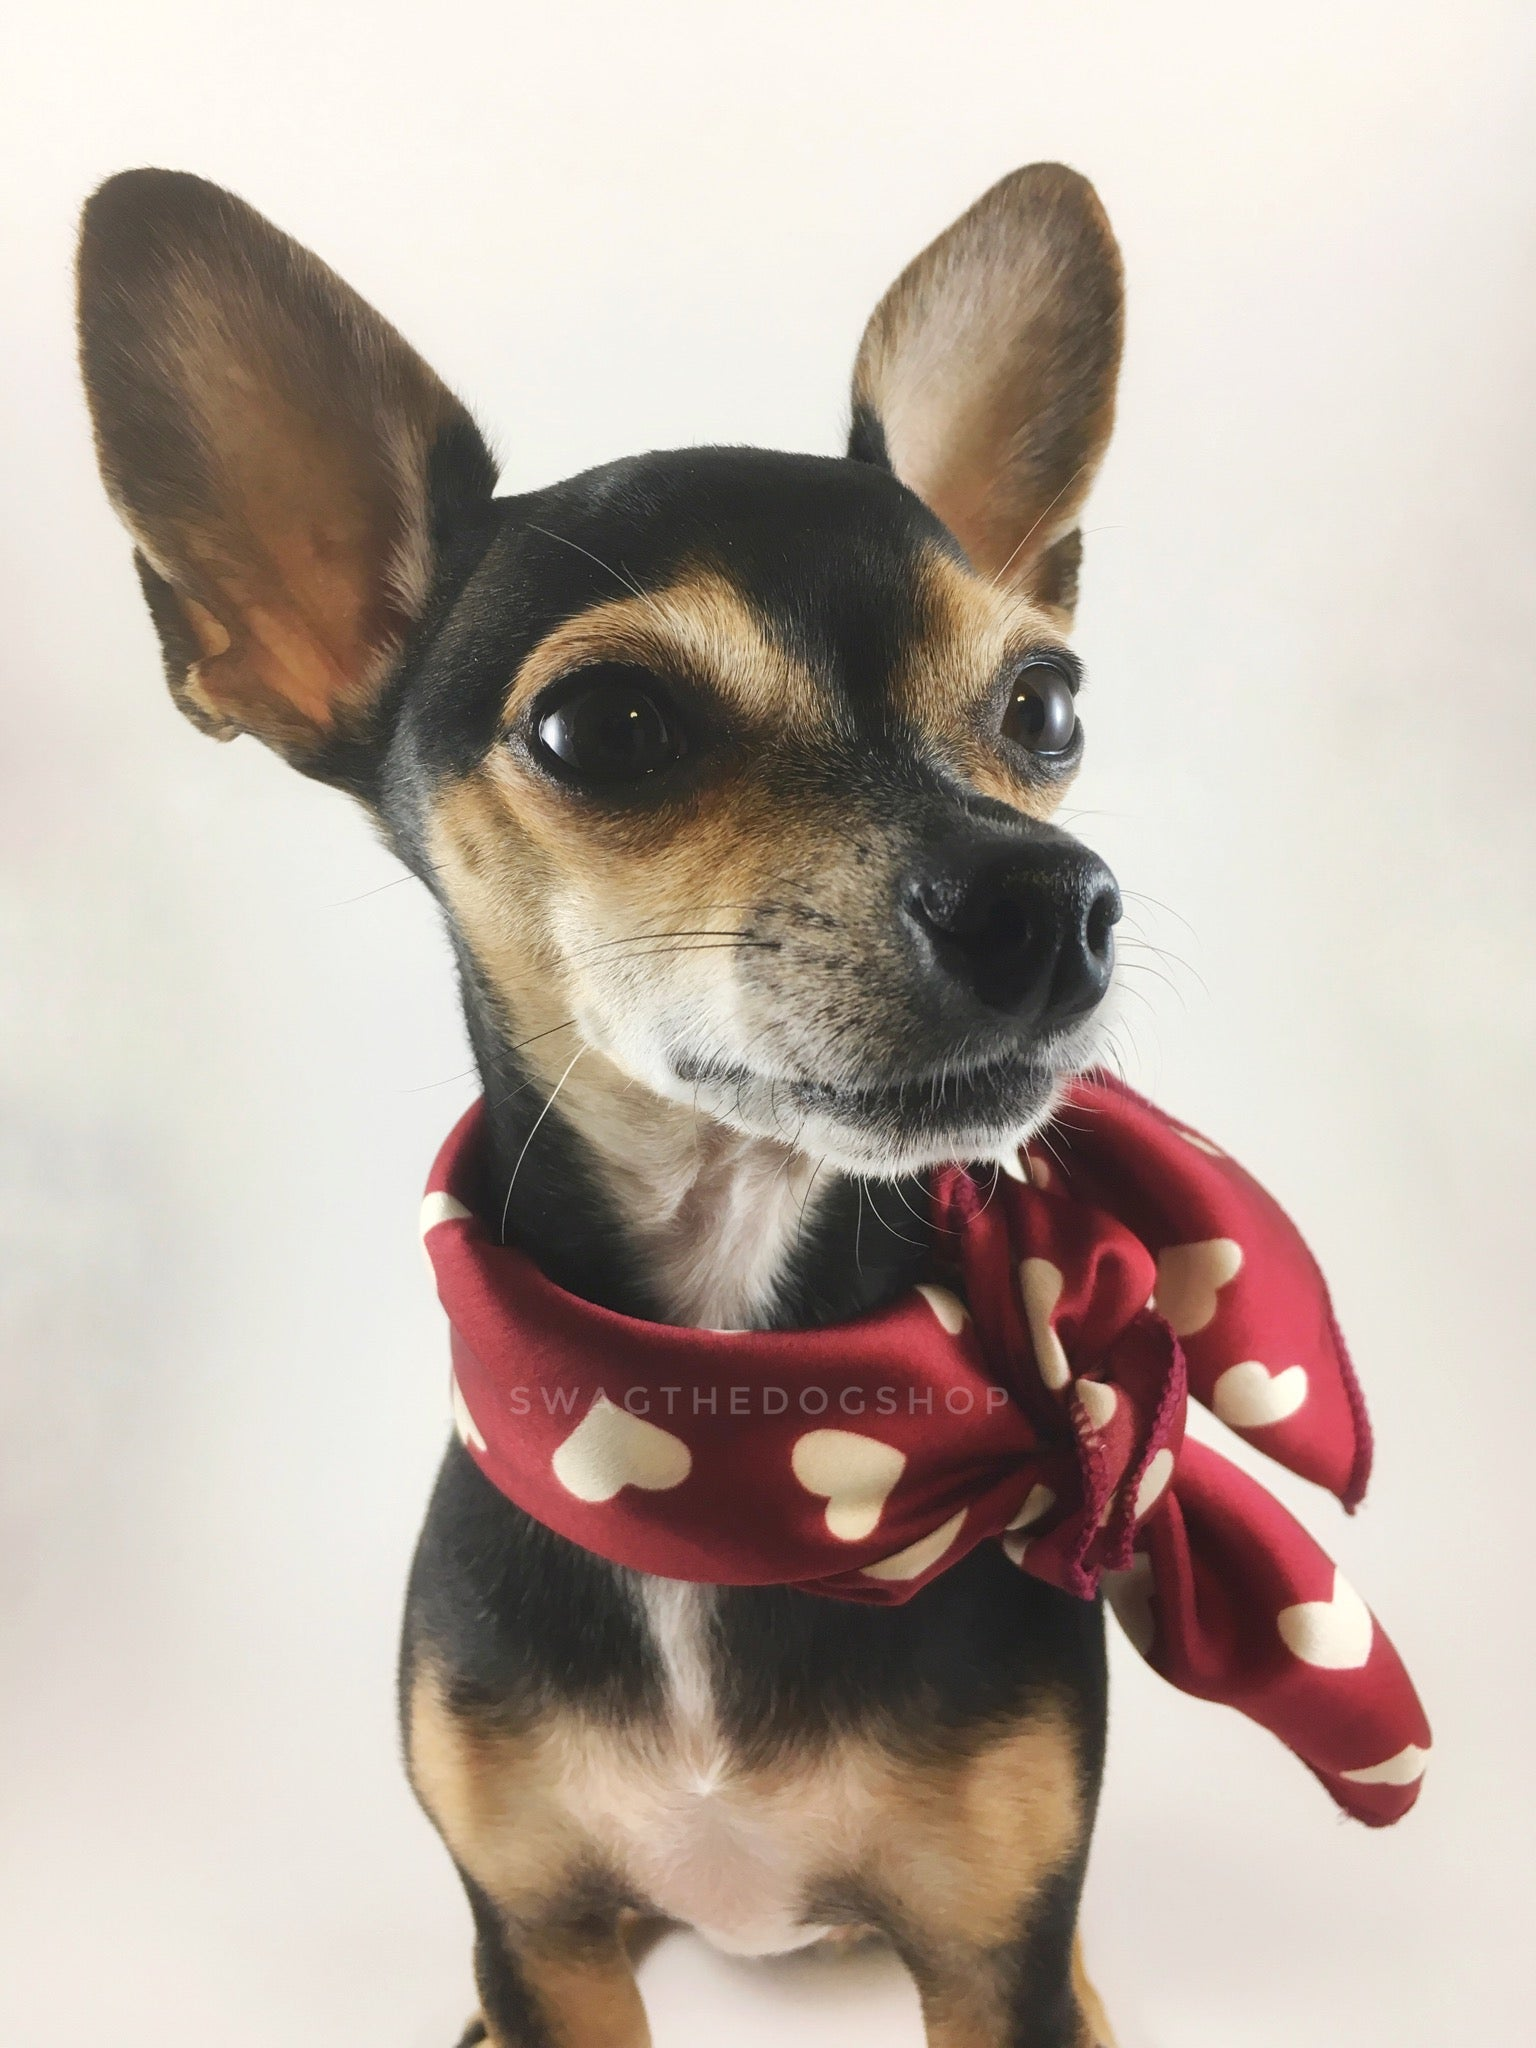 Full of Heart Red Swagdana Scarf - Bust of Cute Chihuahua Wearing Swagdana Scarf as Neckerchief. Dog Bandana. Dog Scarf.